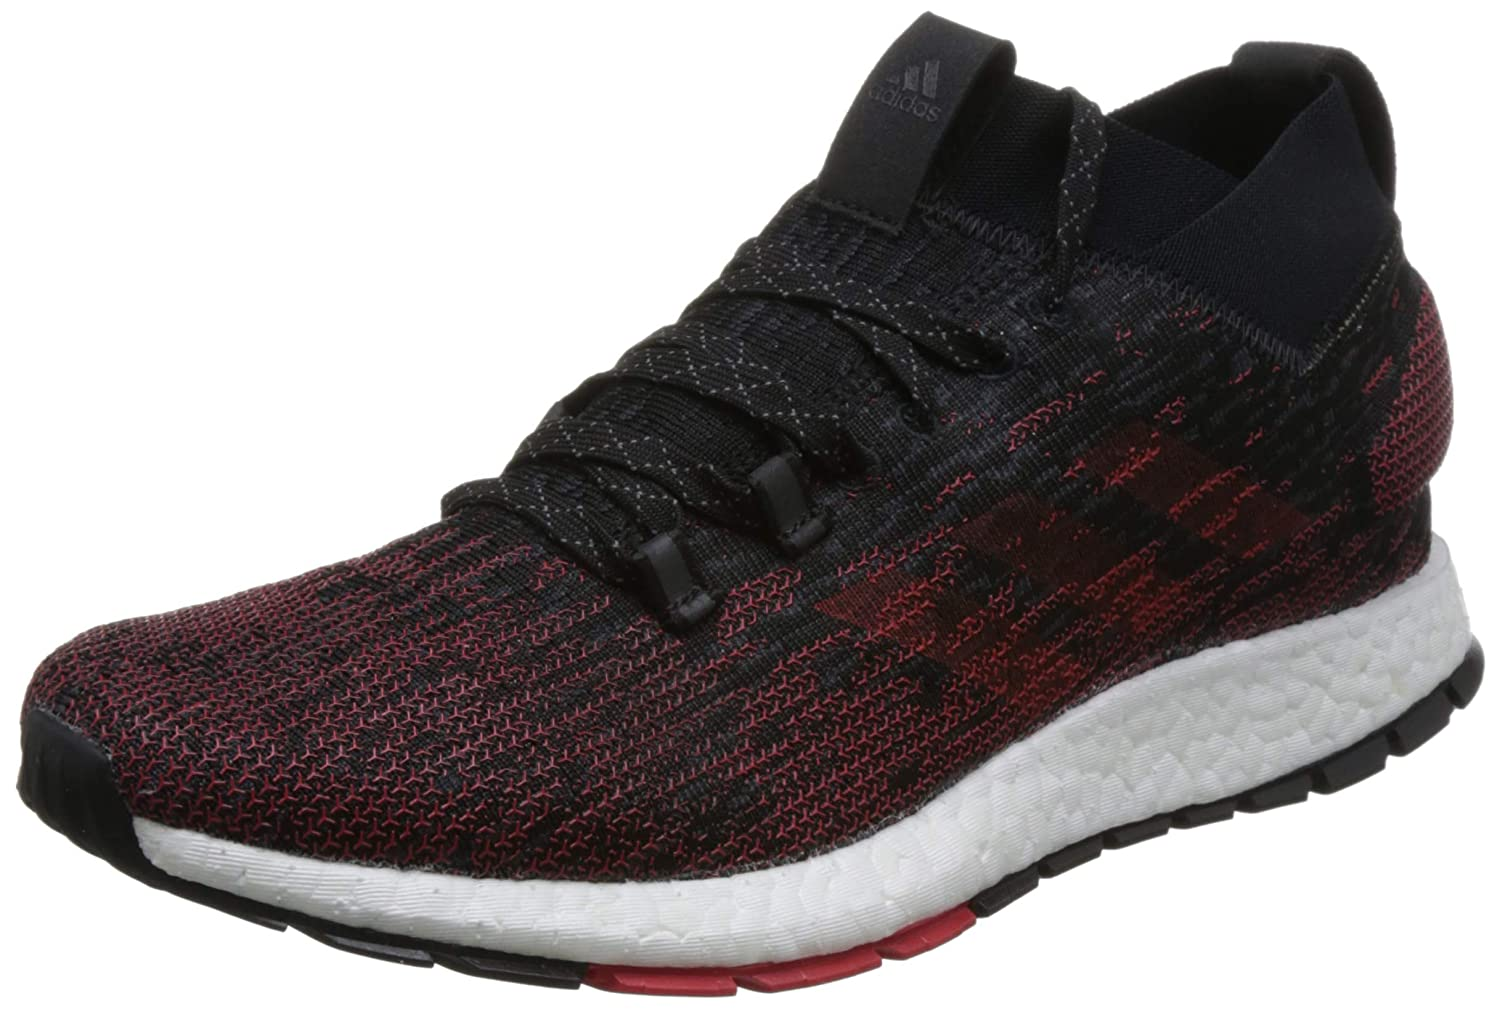 huge discount 51118 f1631 Amazon.com  adidas Pureboost RBL Running Shoes - AW18  Shoes